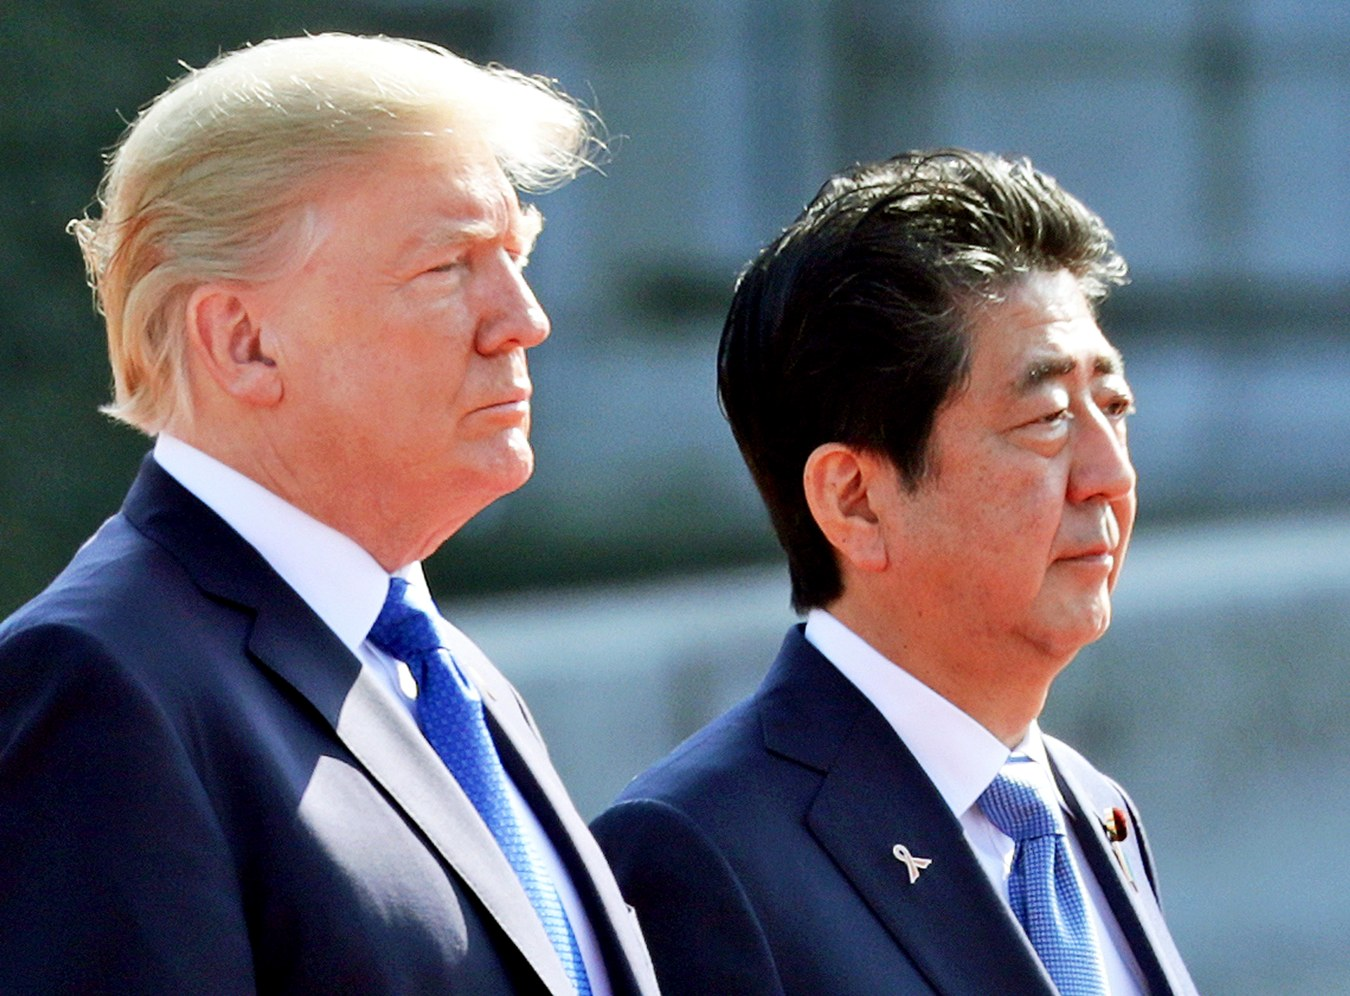 Prime Minister Shinzo Abe and President Donald Trump